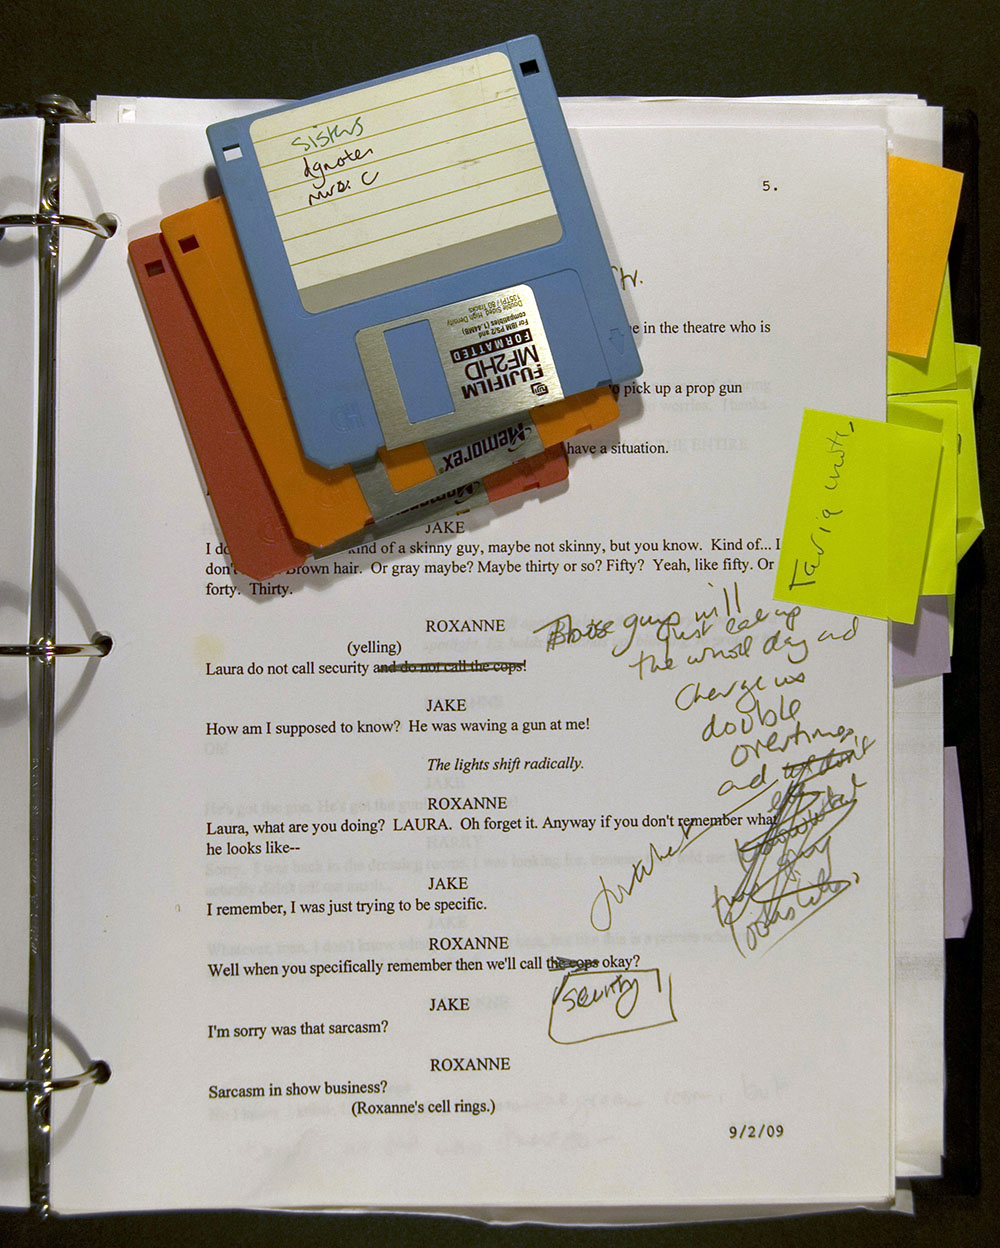 Play script with autograph revisions and computer disks for The Understudy, September 2009